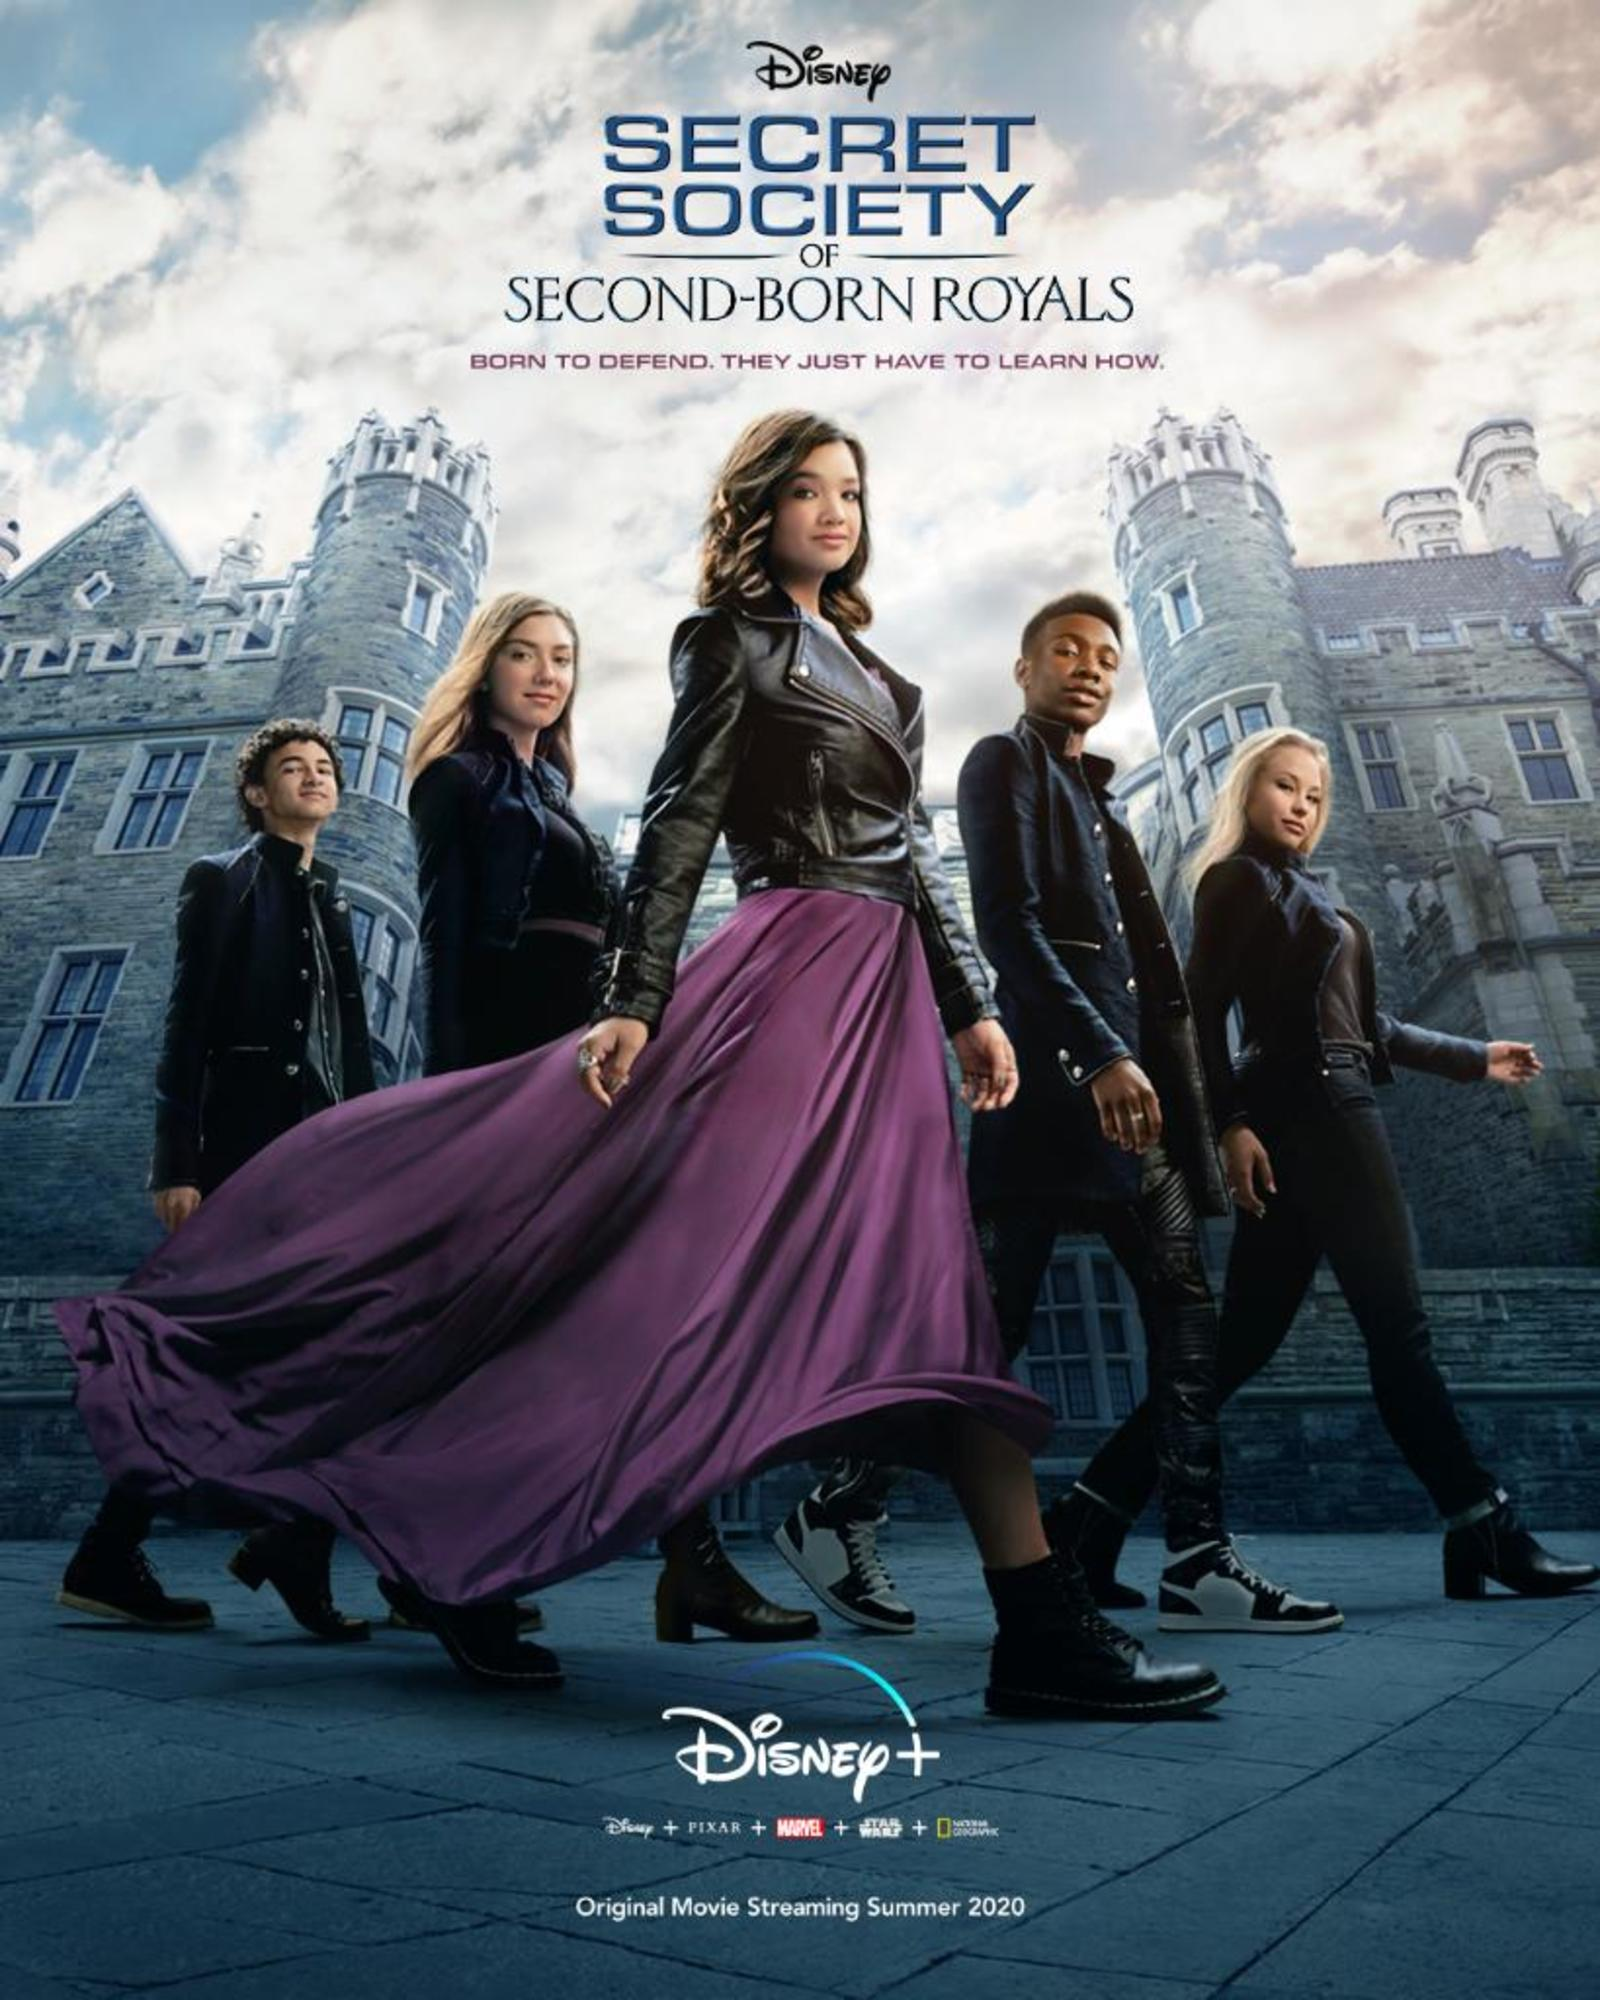 affiche poster society second born royals disney plus